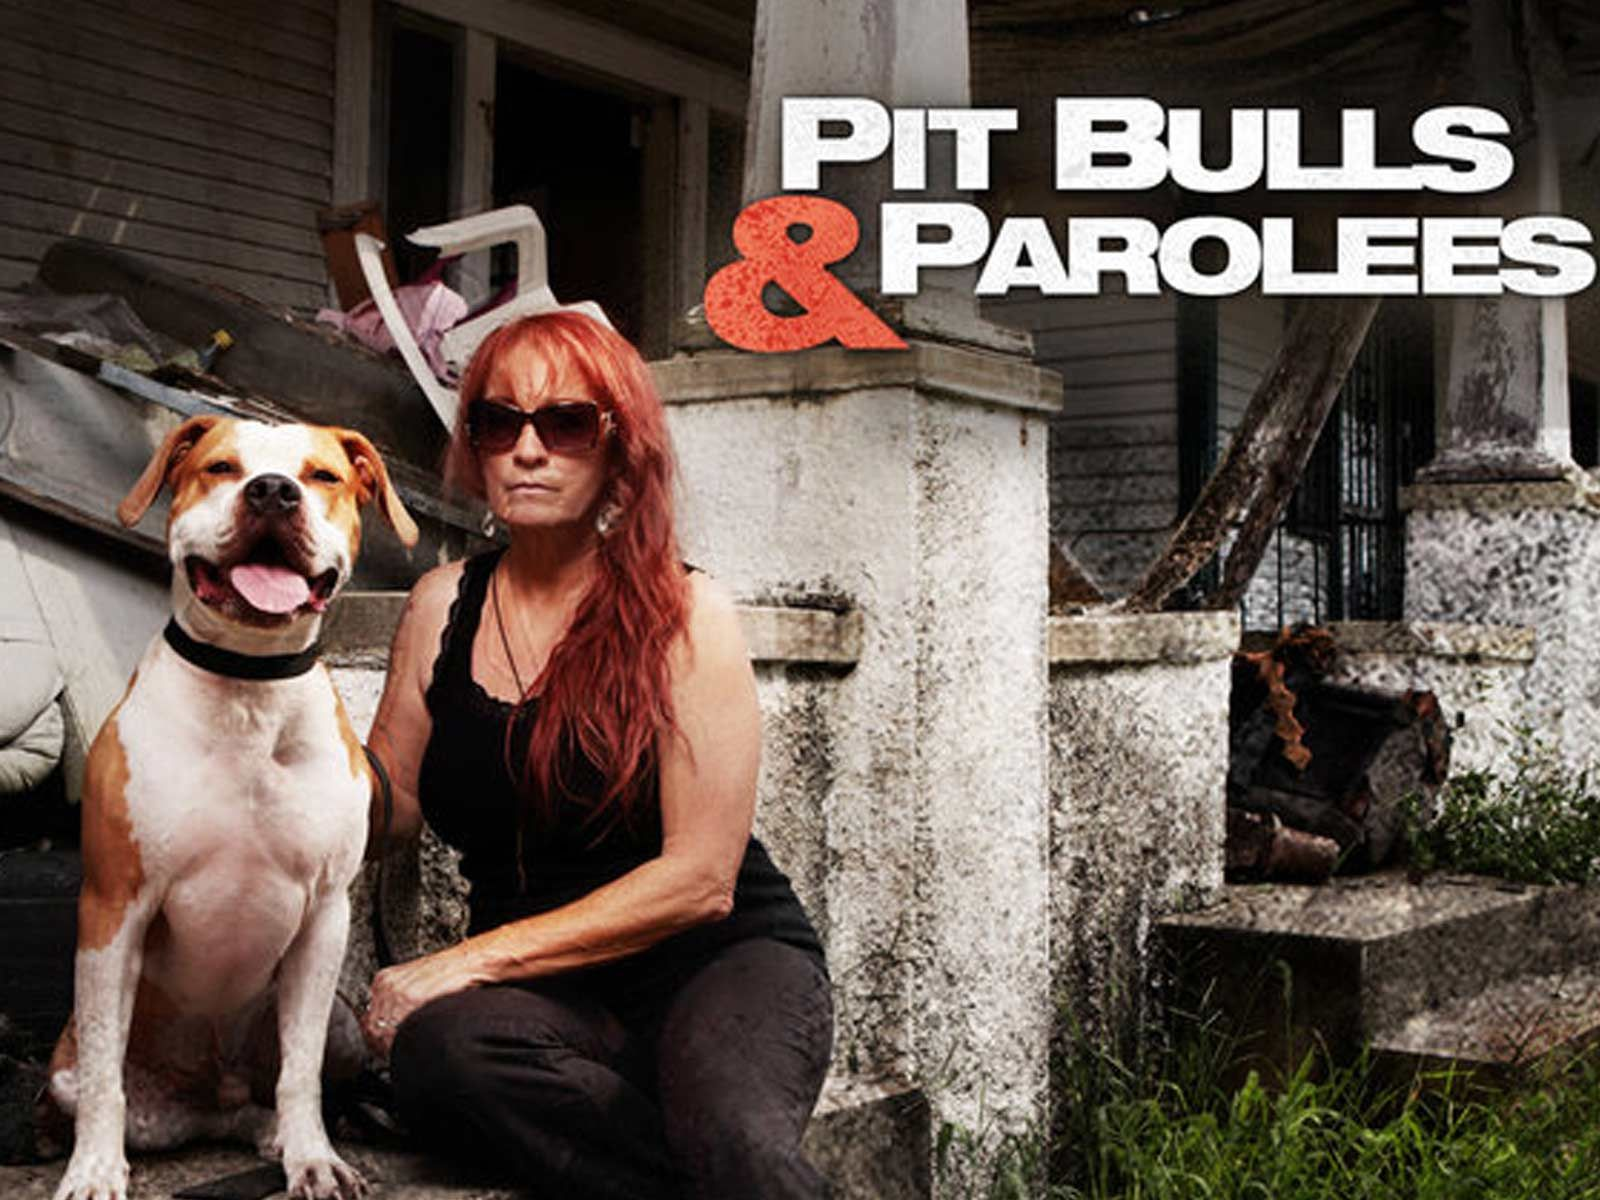 The Dog Shelter From Pit Bulls Parolees Is In Dire Need Of Help